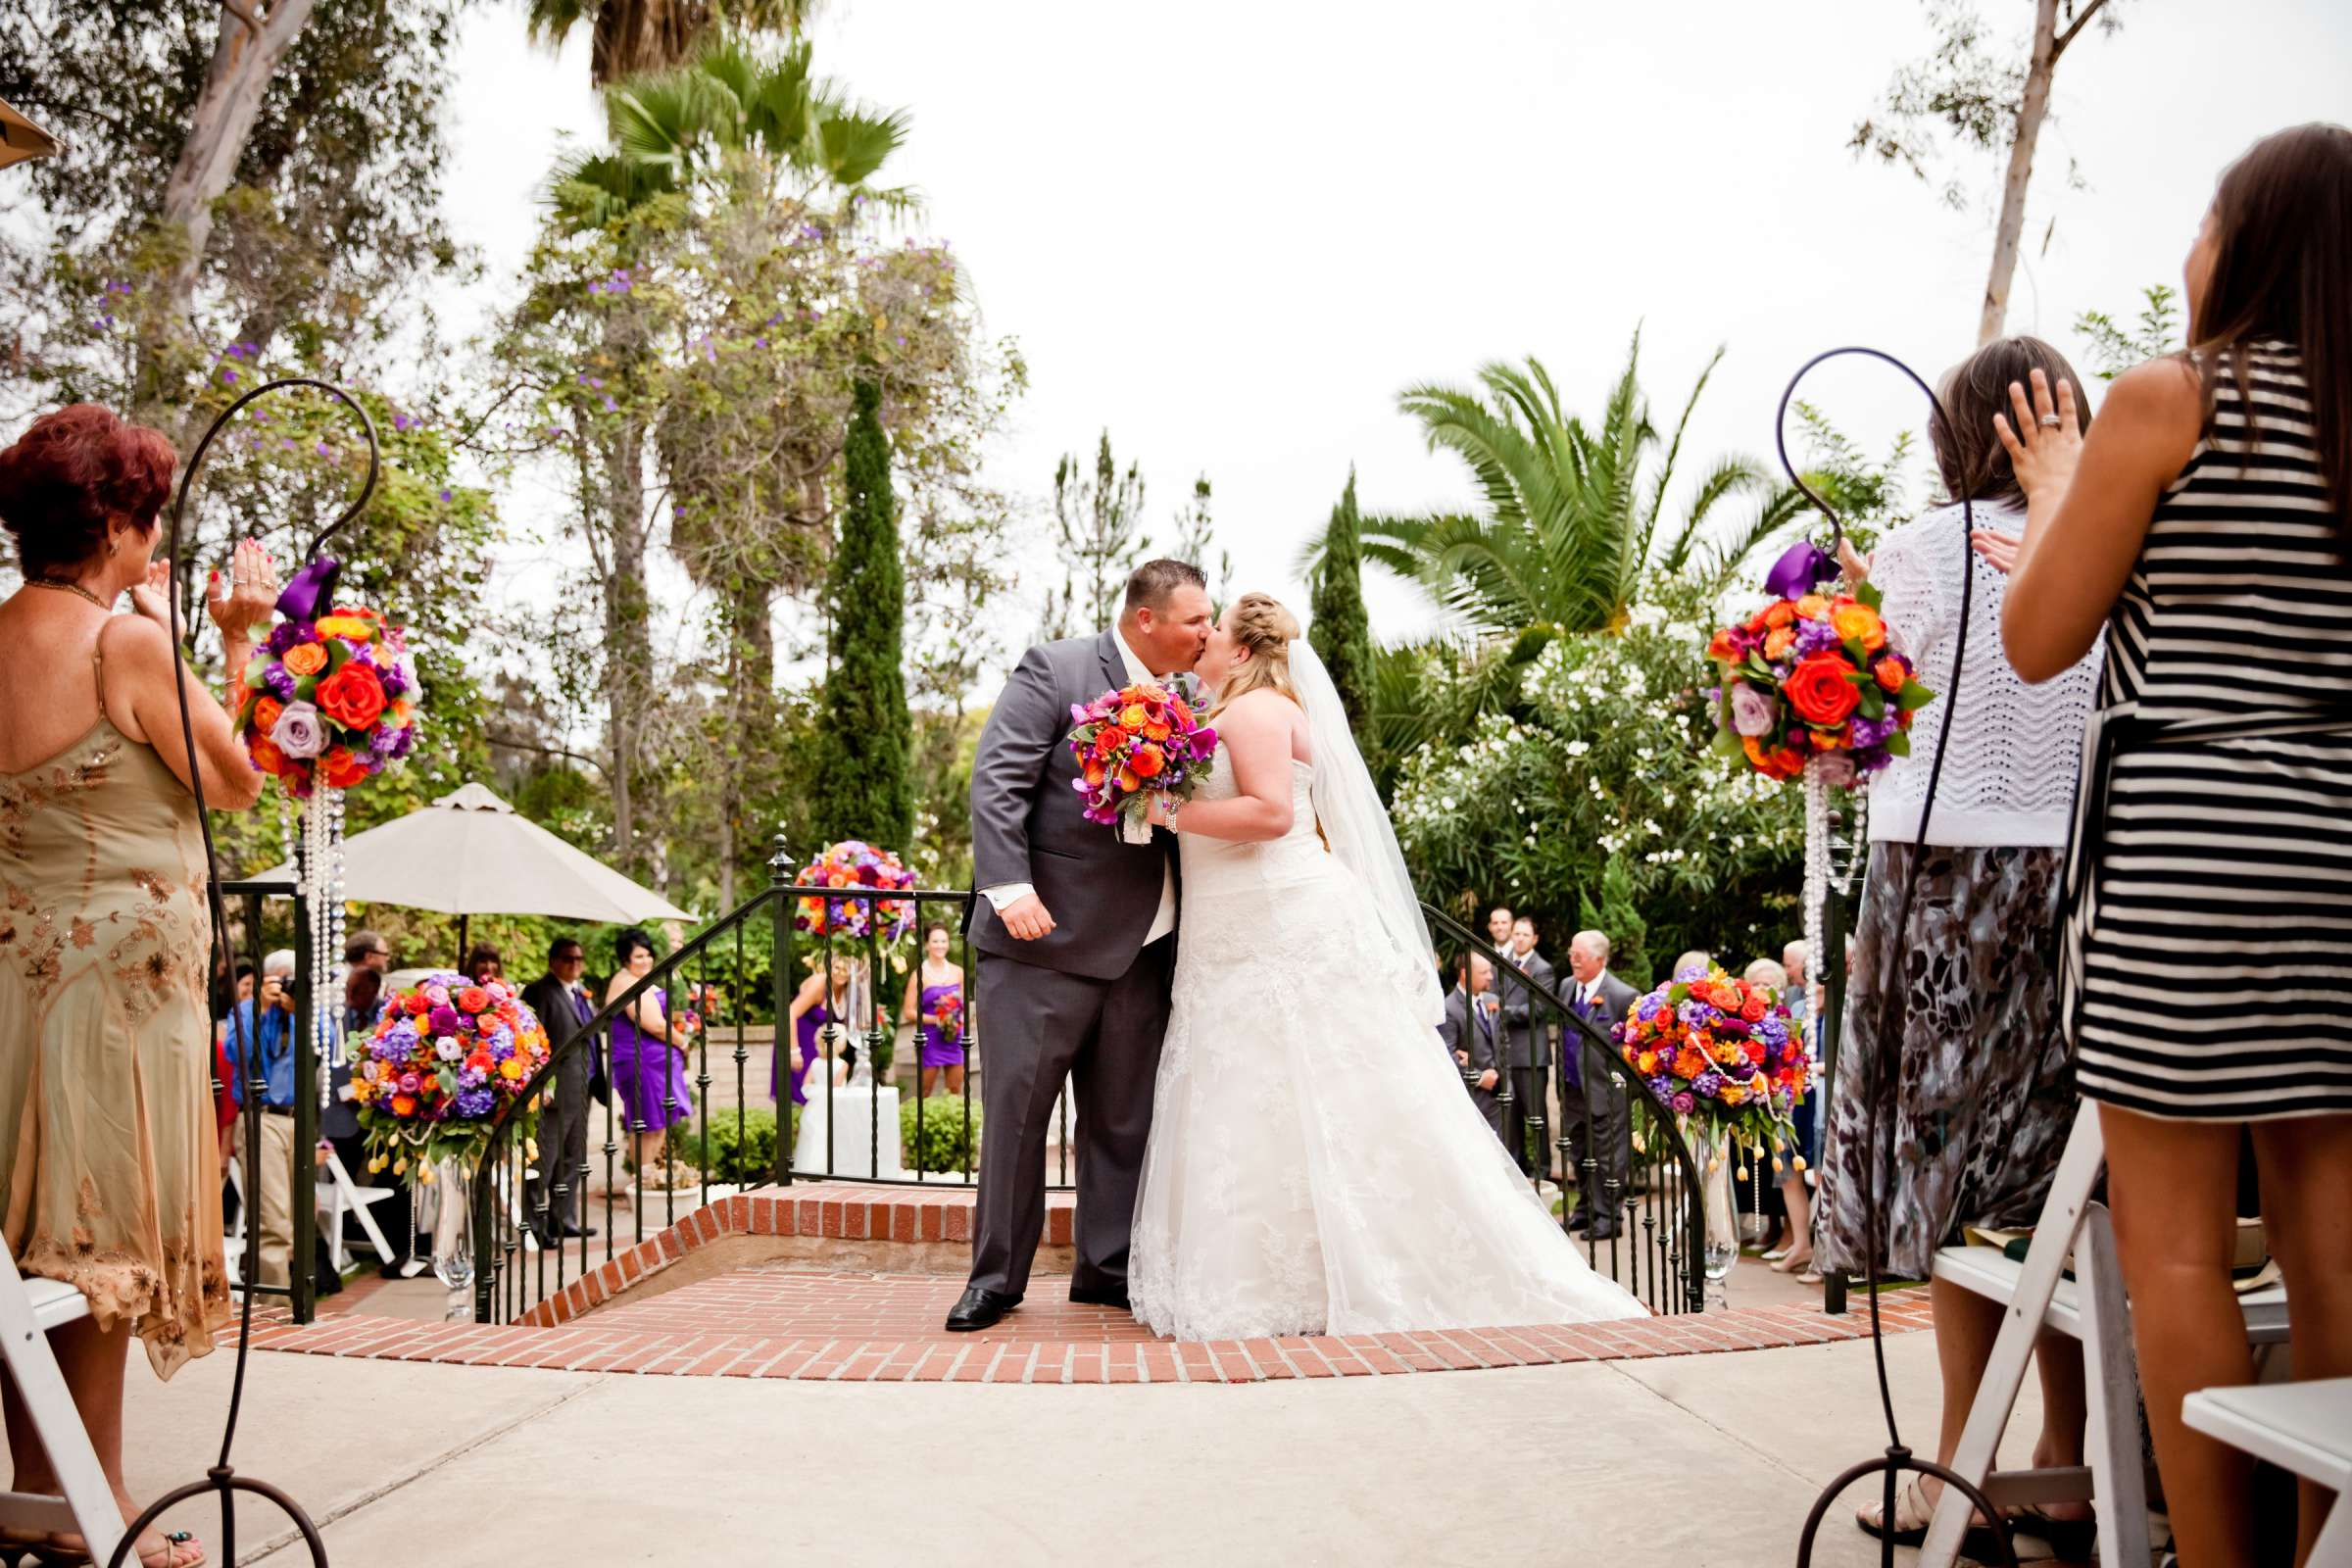 The Prado Wedding coordinated by Monarch Weddings, Eileen and Robbie Wedding Photo #47 by True Photography